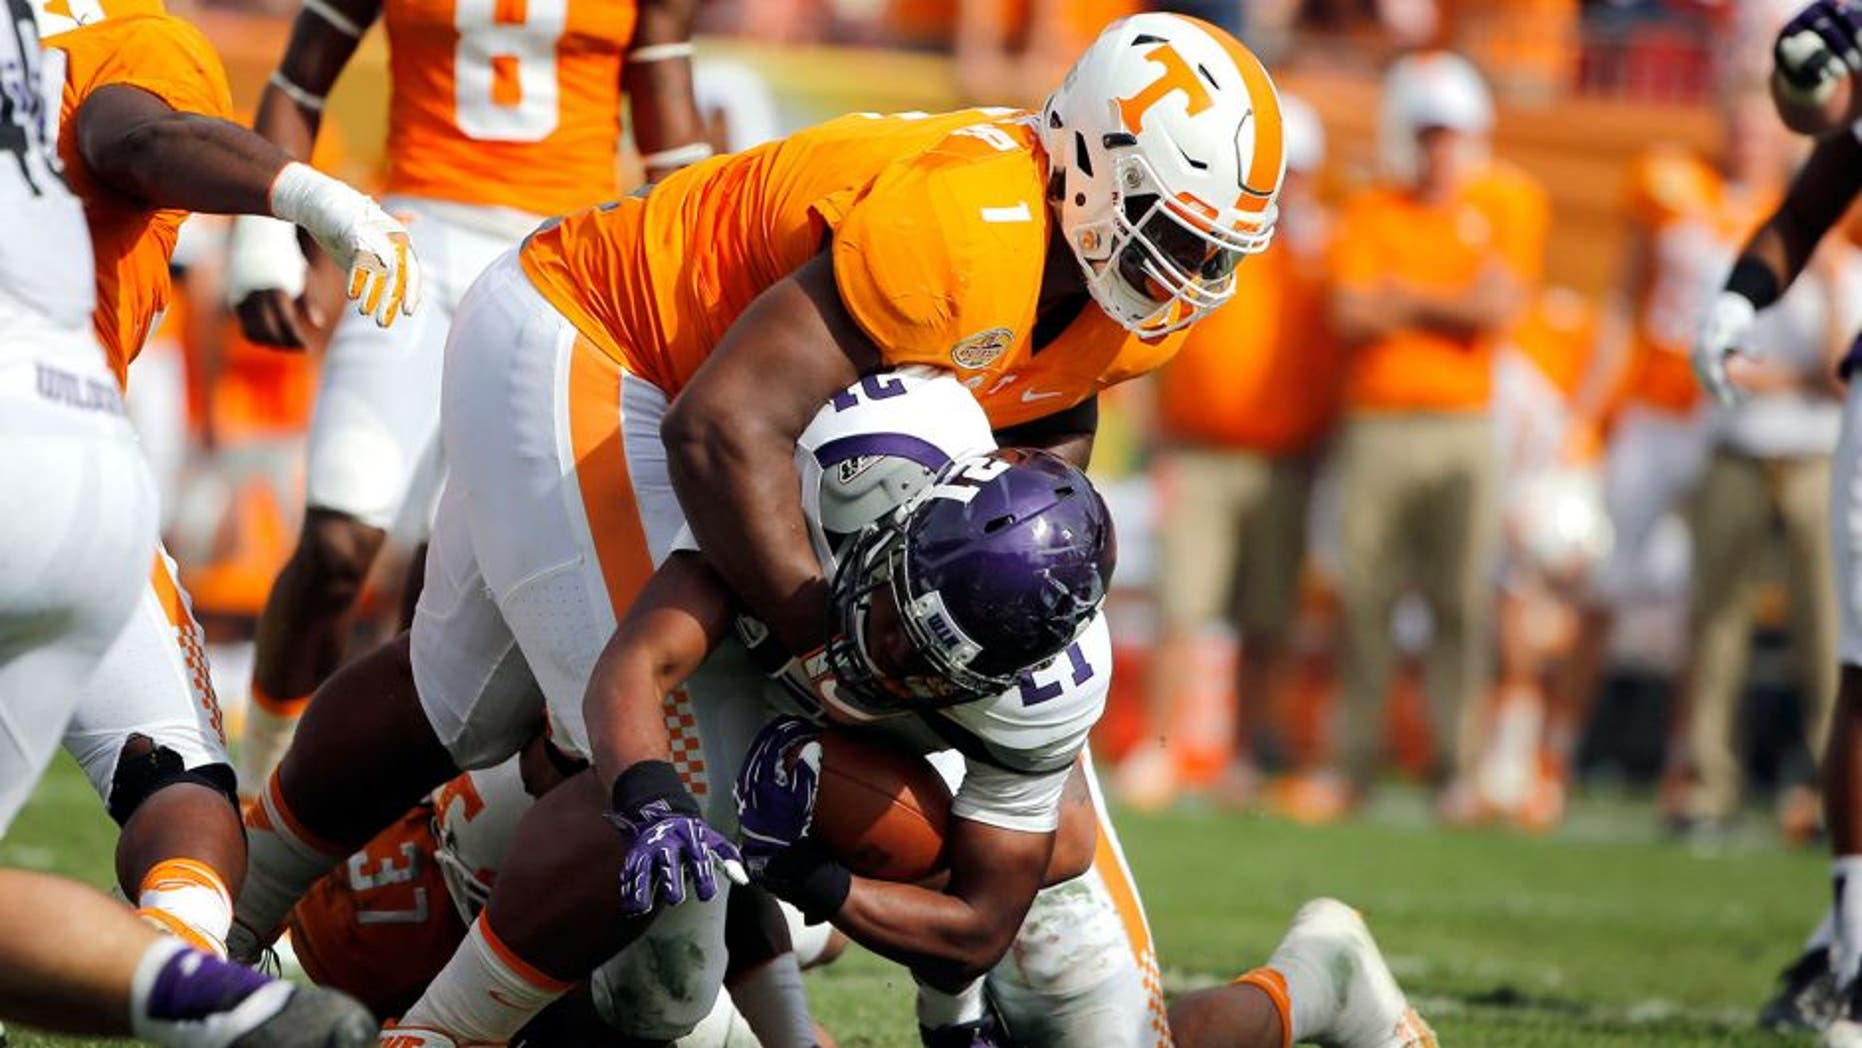 Jan 1, 2016; Tampa, FL, USA; Tennessee Volunteers defensive lineman Kahlil McKenzie (1) tackles Northwestern Wildcats running back Justin Jackson (21) during the first half in the 2016 Outback Bowl at Raymond James Stadium. Mandatory Credit: Kim Klement-USA TODAY Sports